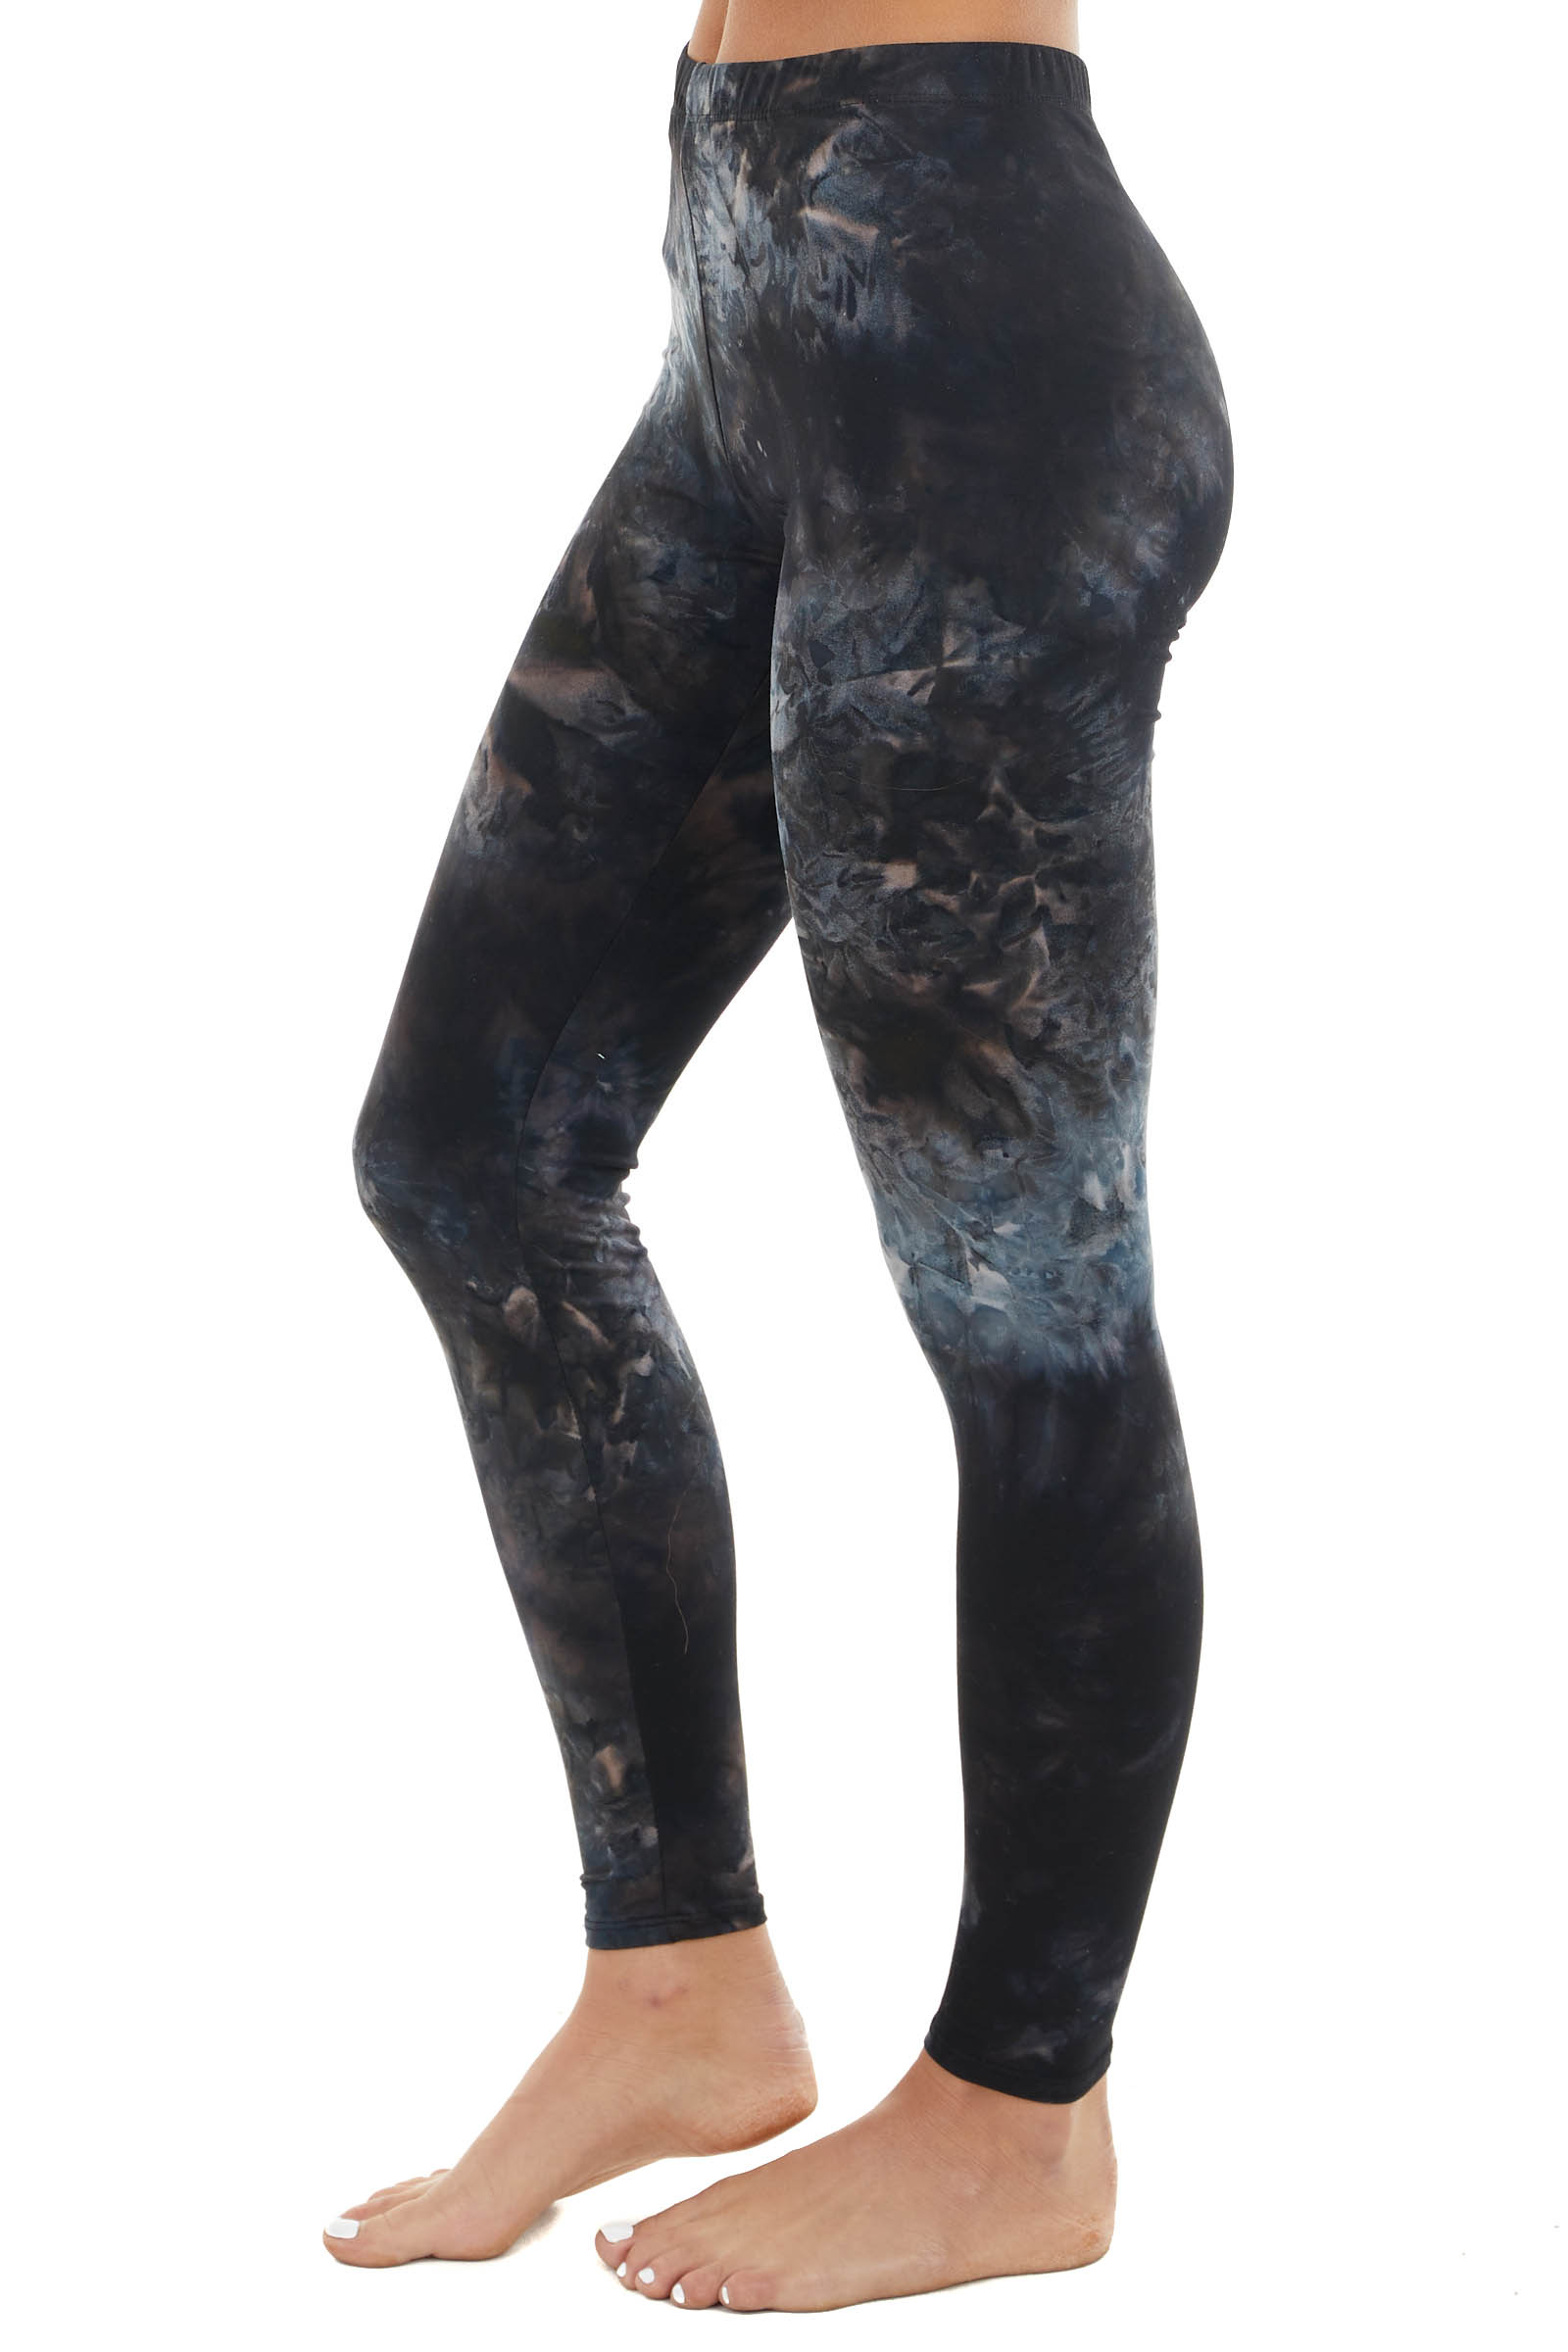 Black and Navy Tie Dye Print Lightweight Knit Leggings